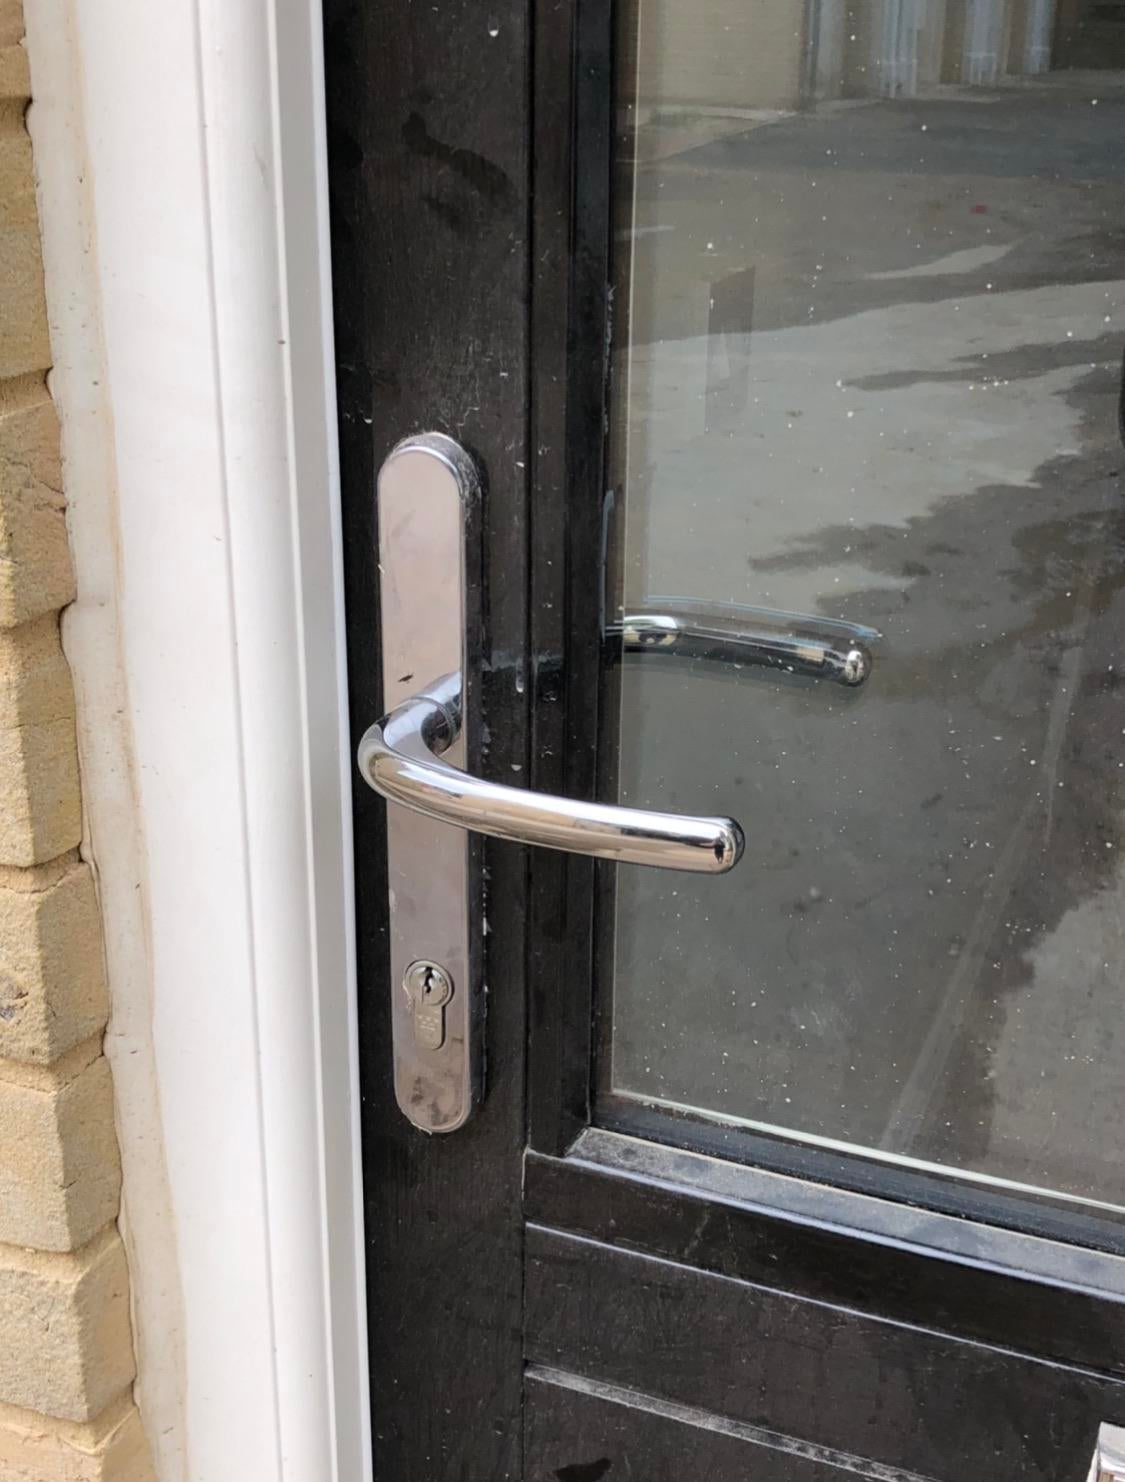 What type of lock would work best here